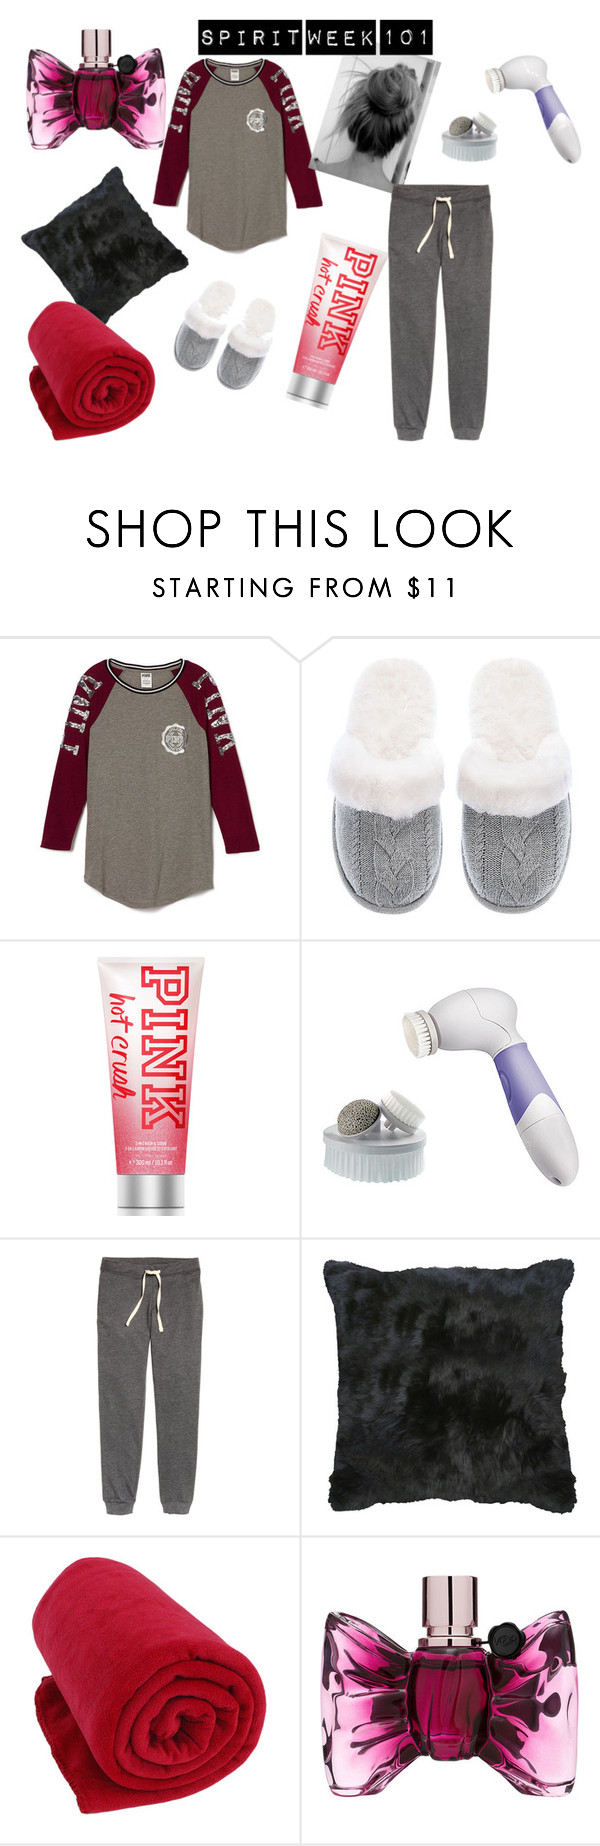 """Pajama Day"" by cammy-trill on Polyvore featuring Victoria's Secret, H&M, Viktor & Rolf, women's clothing, women's fashion, women, female, woman, misses and juniors"